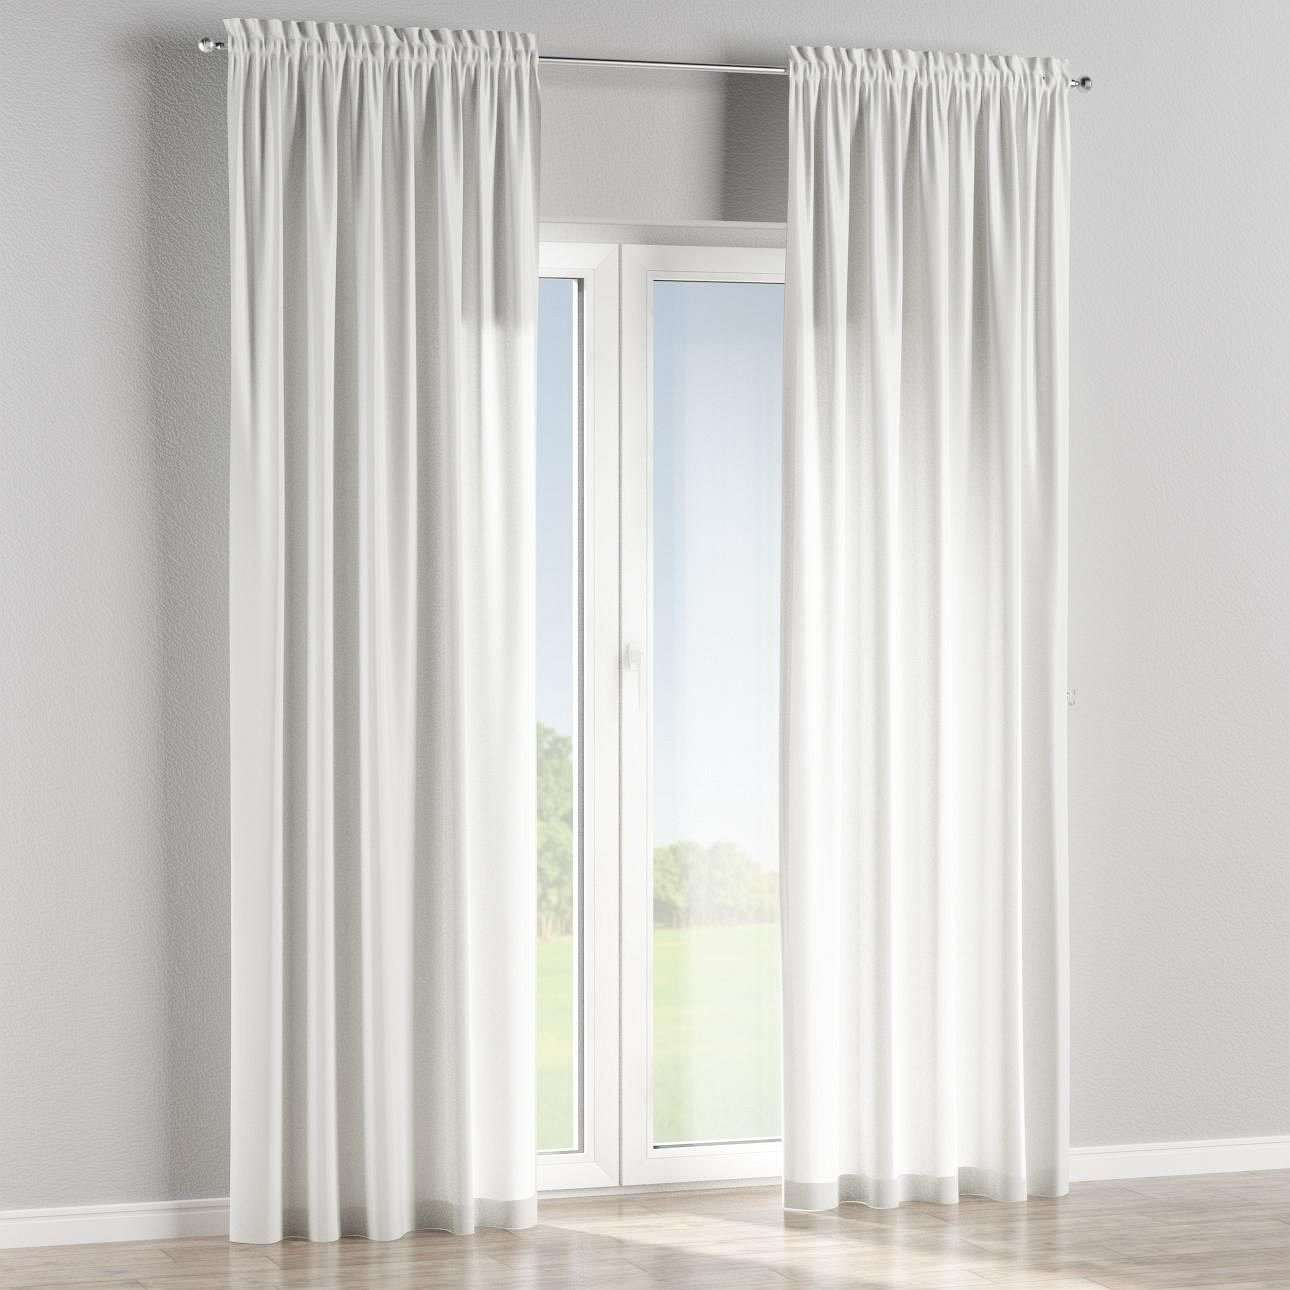 Slot and frill lined curtains in collection SALE, fabric: 104-01